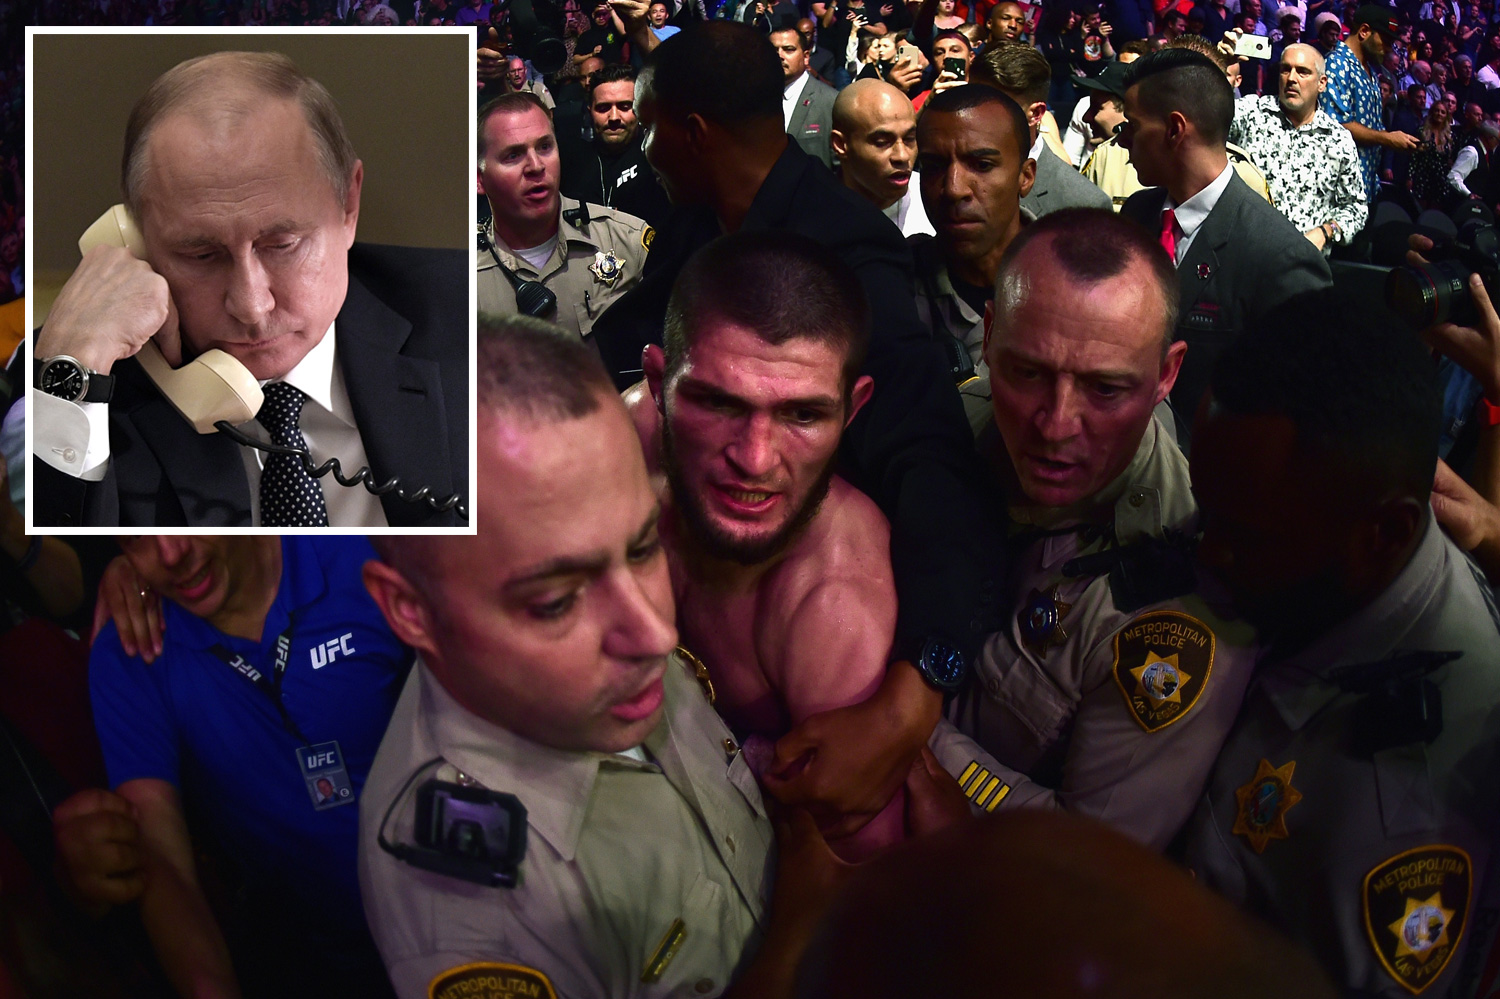 Vladimir Putin phoned the undefeated brawler after he was escorted back to his dressing room